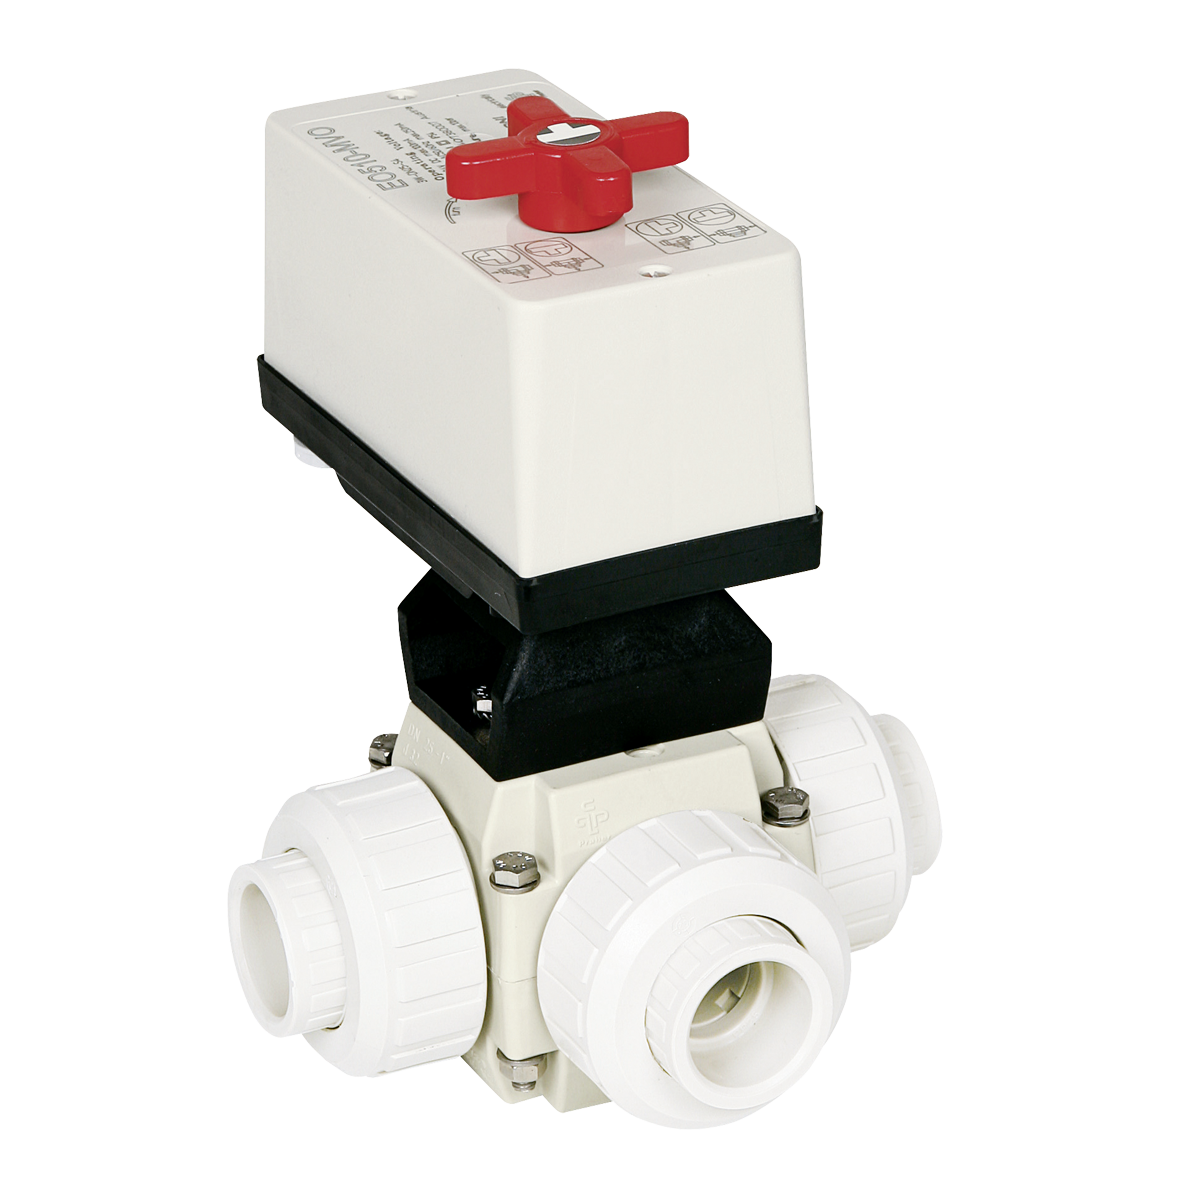 Praher 3-way ball valve S4 PVDF with EO510 actuator, white, black, red